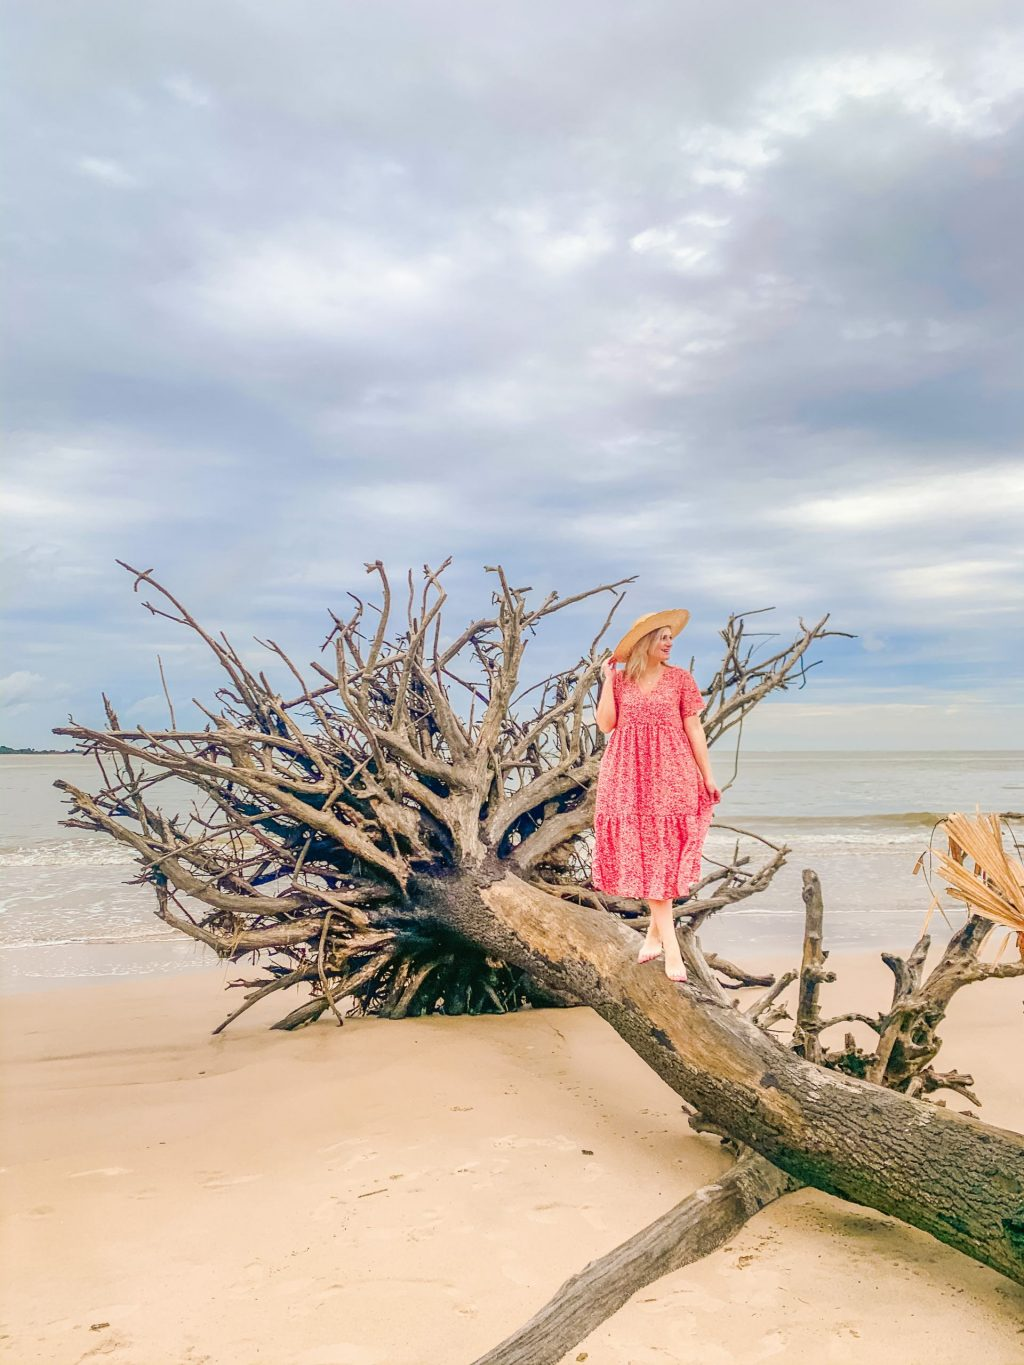 Jacksonville, Florida Travel Guide. Best activities to do and places to see. This fun, detailed Jacksonville Travel Guide highlights everything you need to know for your trip including this fun location- Boneyard Beach